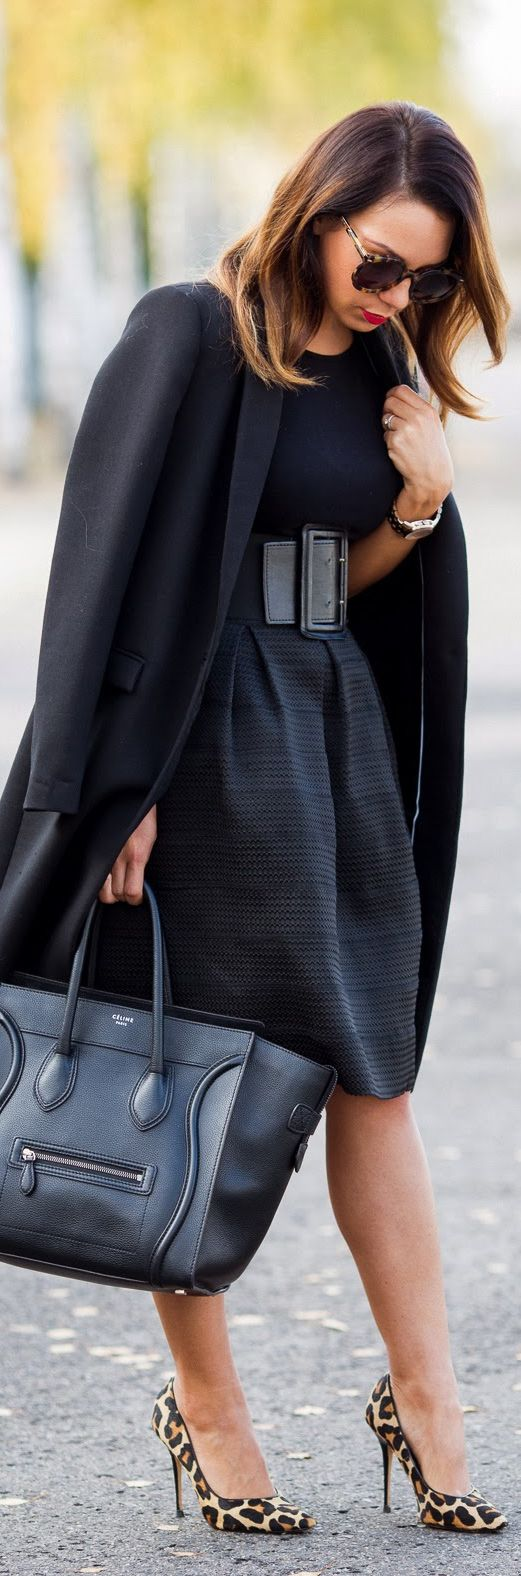 Great for work. Love the wide belt with this fab skirt and form fitting top! All black